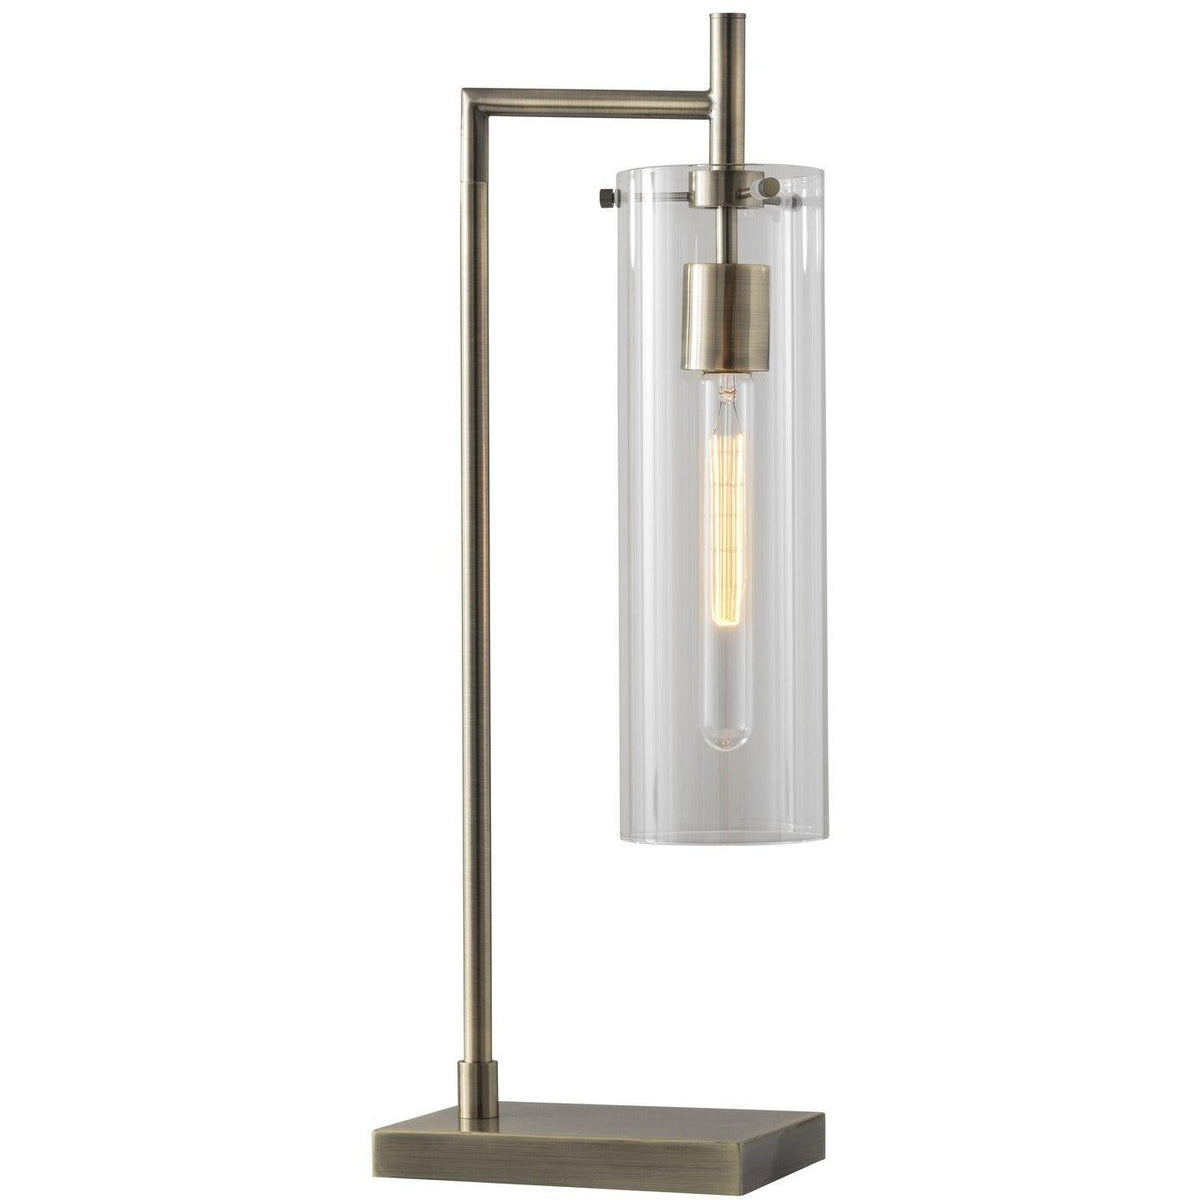 Adesso Home - 3852-21 - One Light Table Lamp - Dalton - Antique Brass